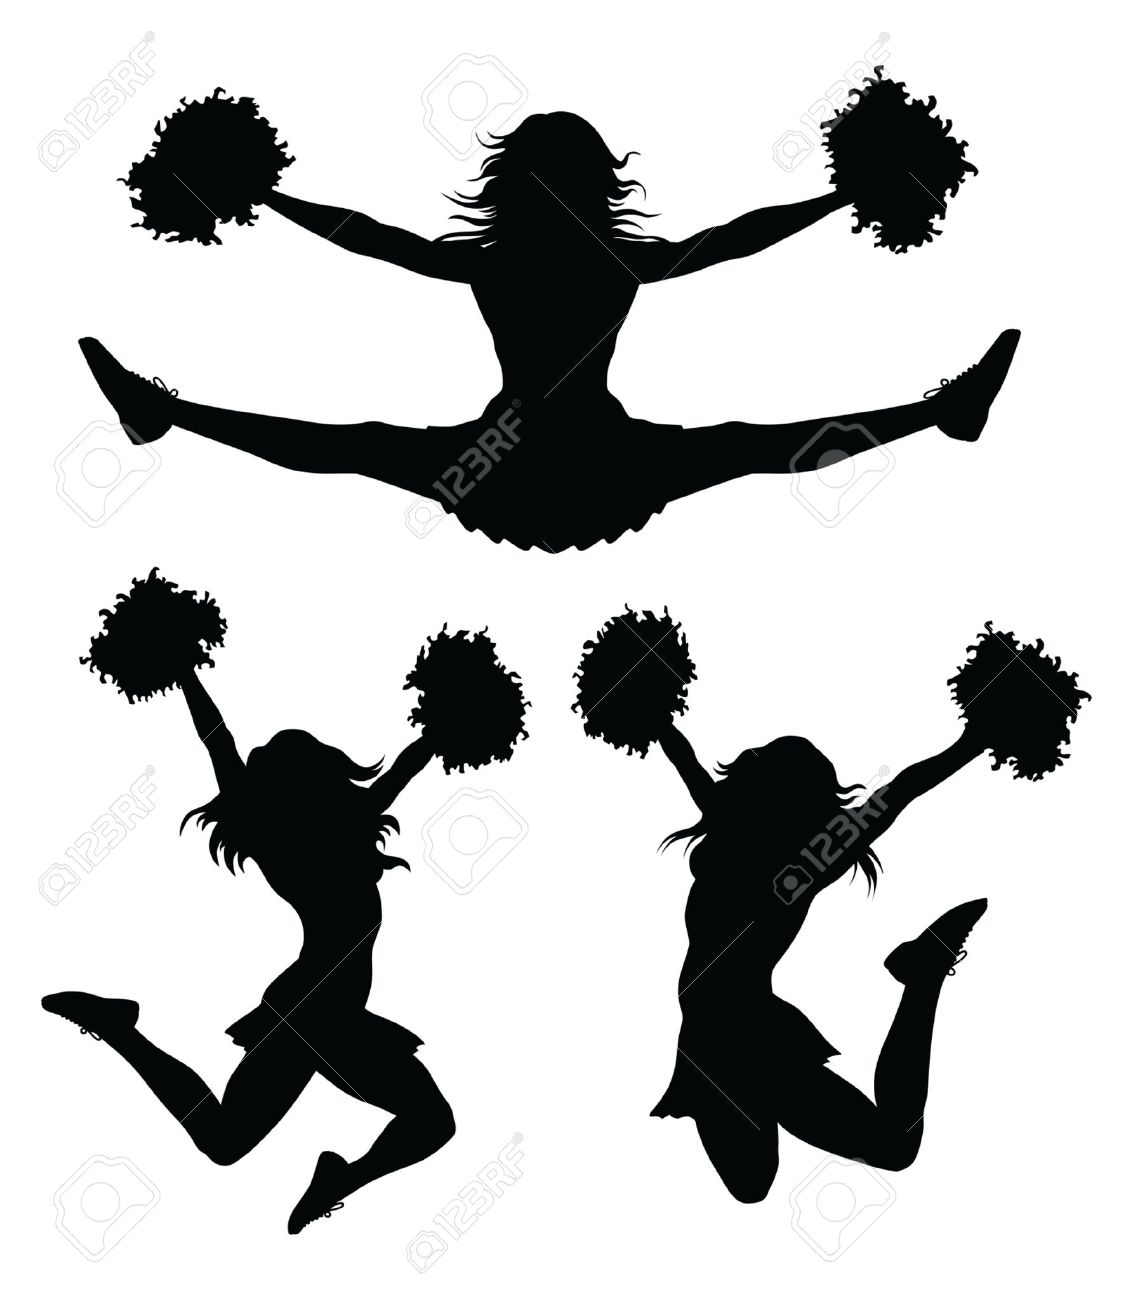 cheerleaders is an illustration of a cheerleader jumping and rh 123rf com cheerleader vector graphics cheerleader vector free